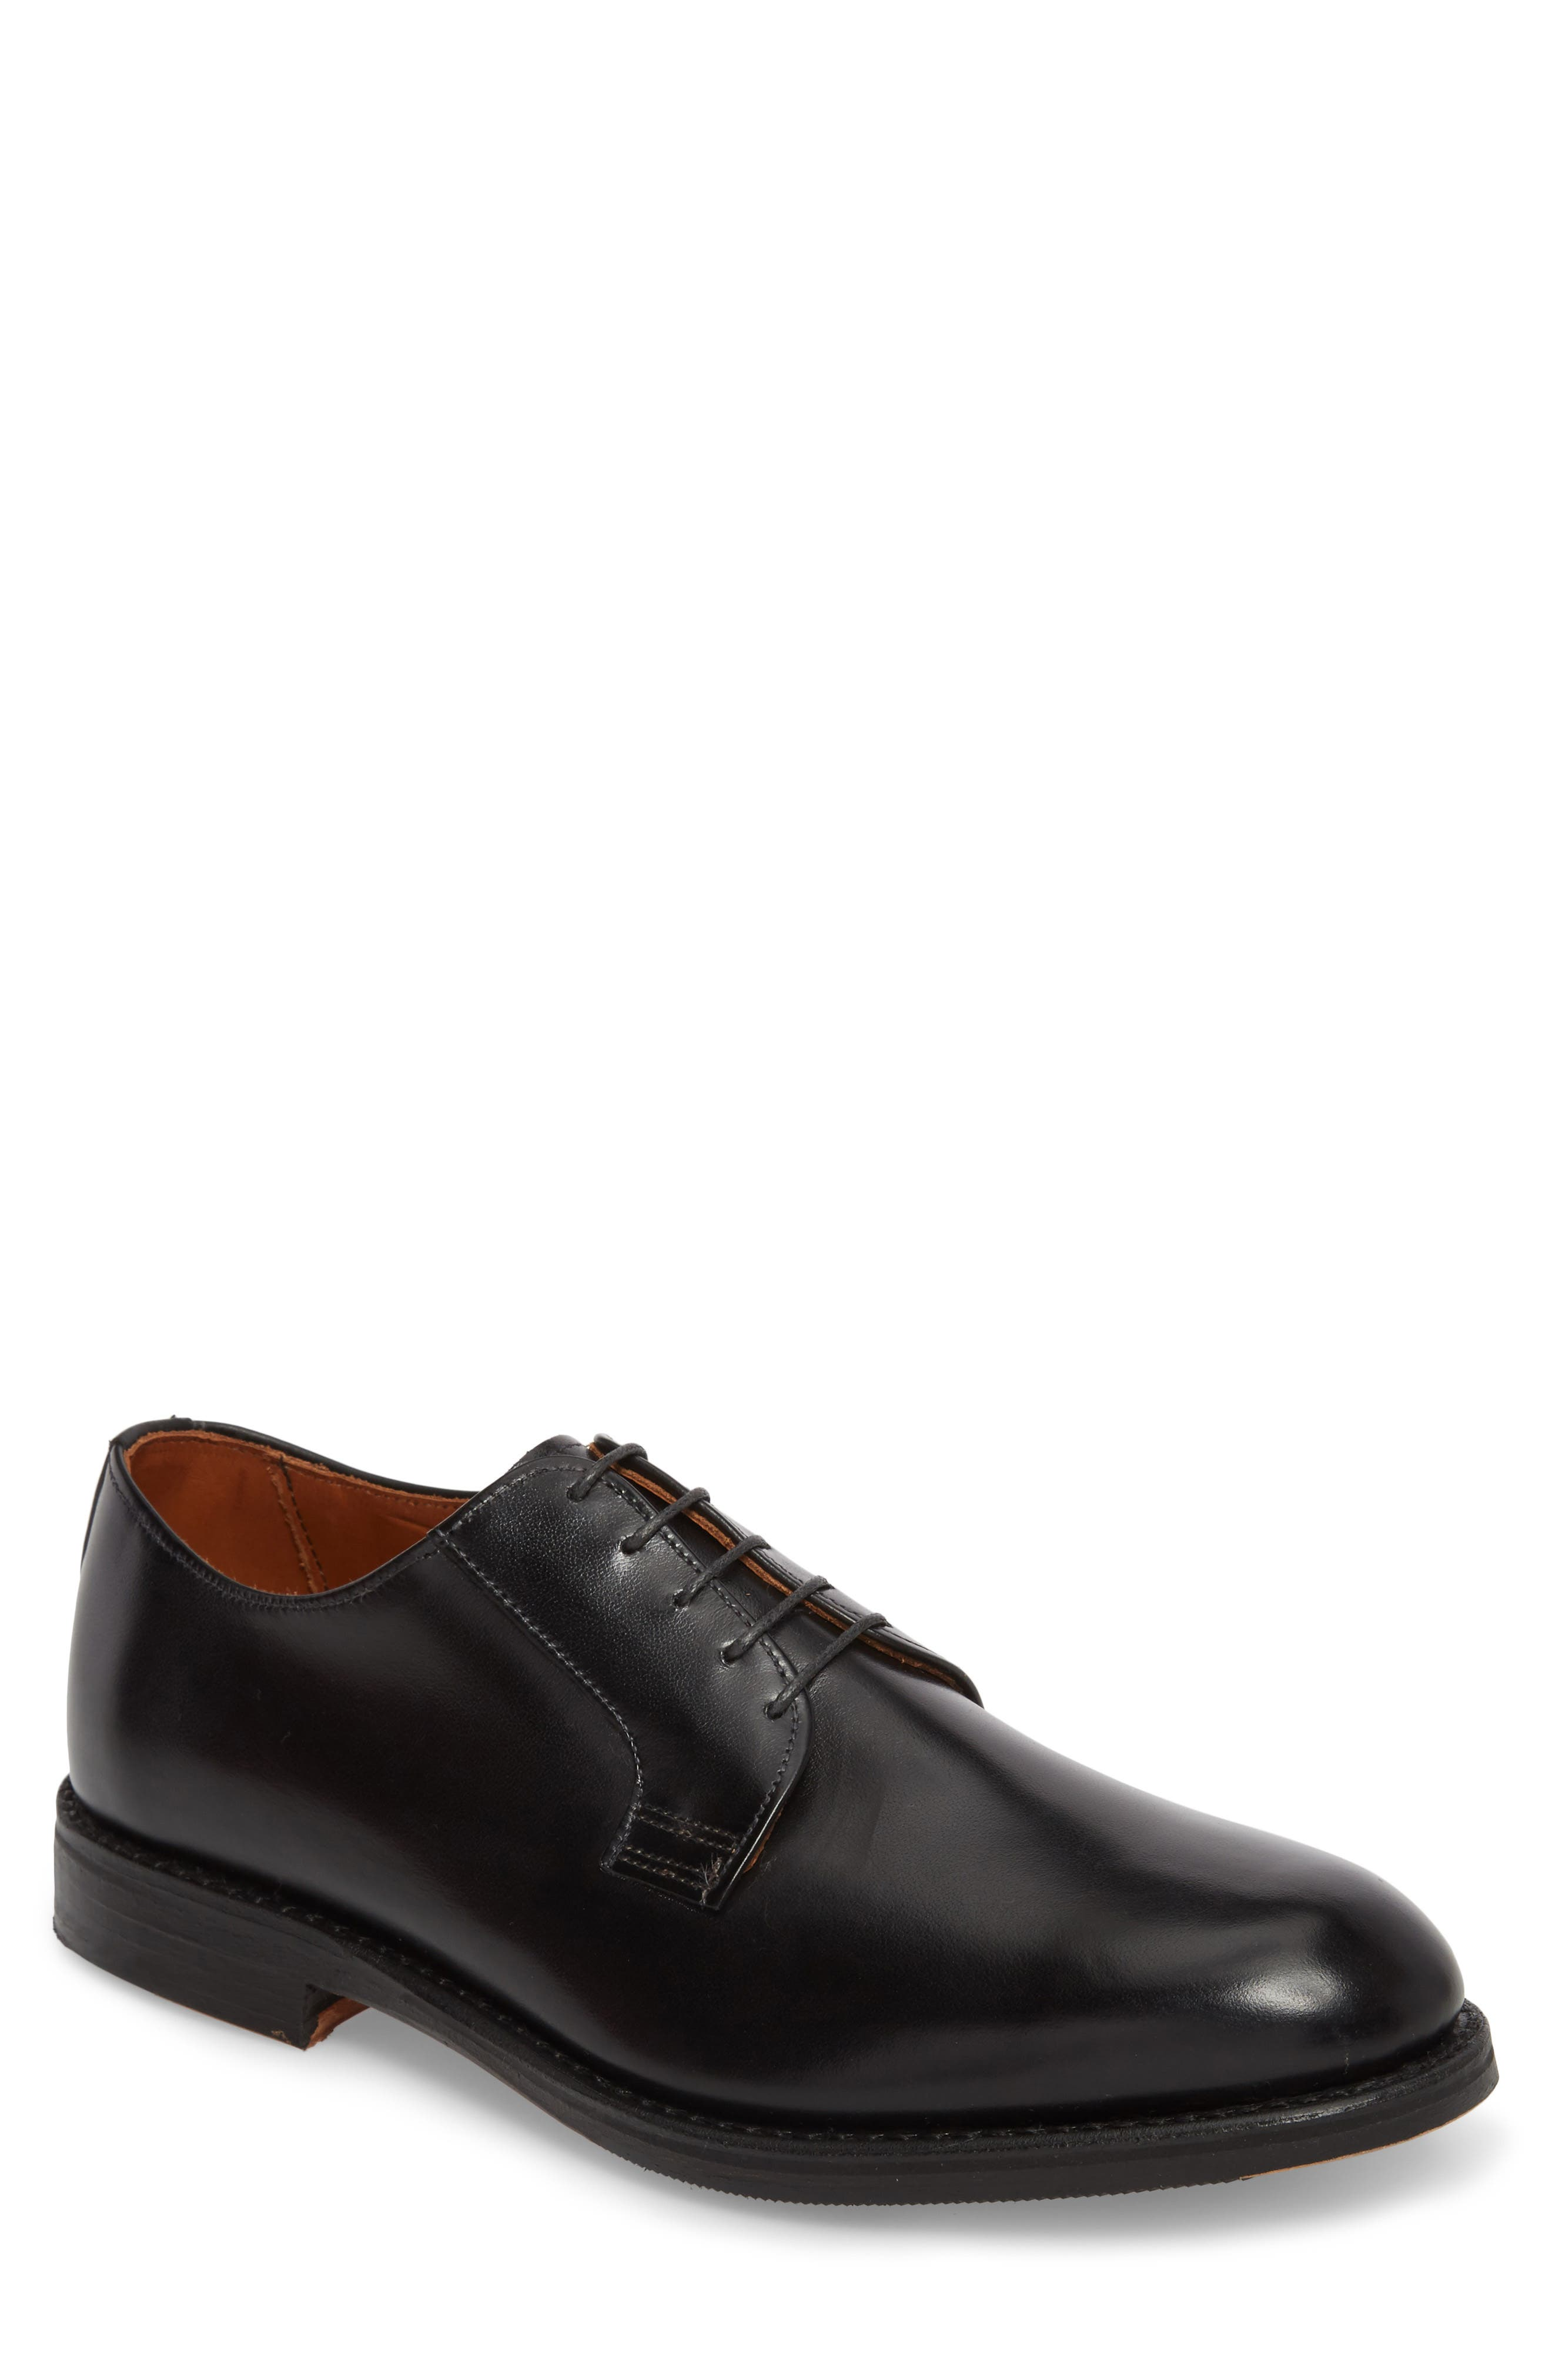 Whitney Plain Toe Derby,                         Main,                         color, BLACK LEATHER